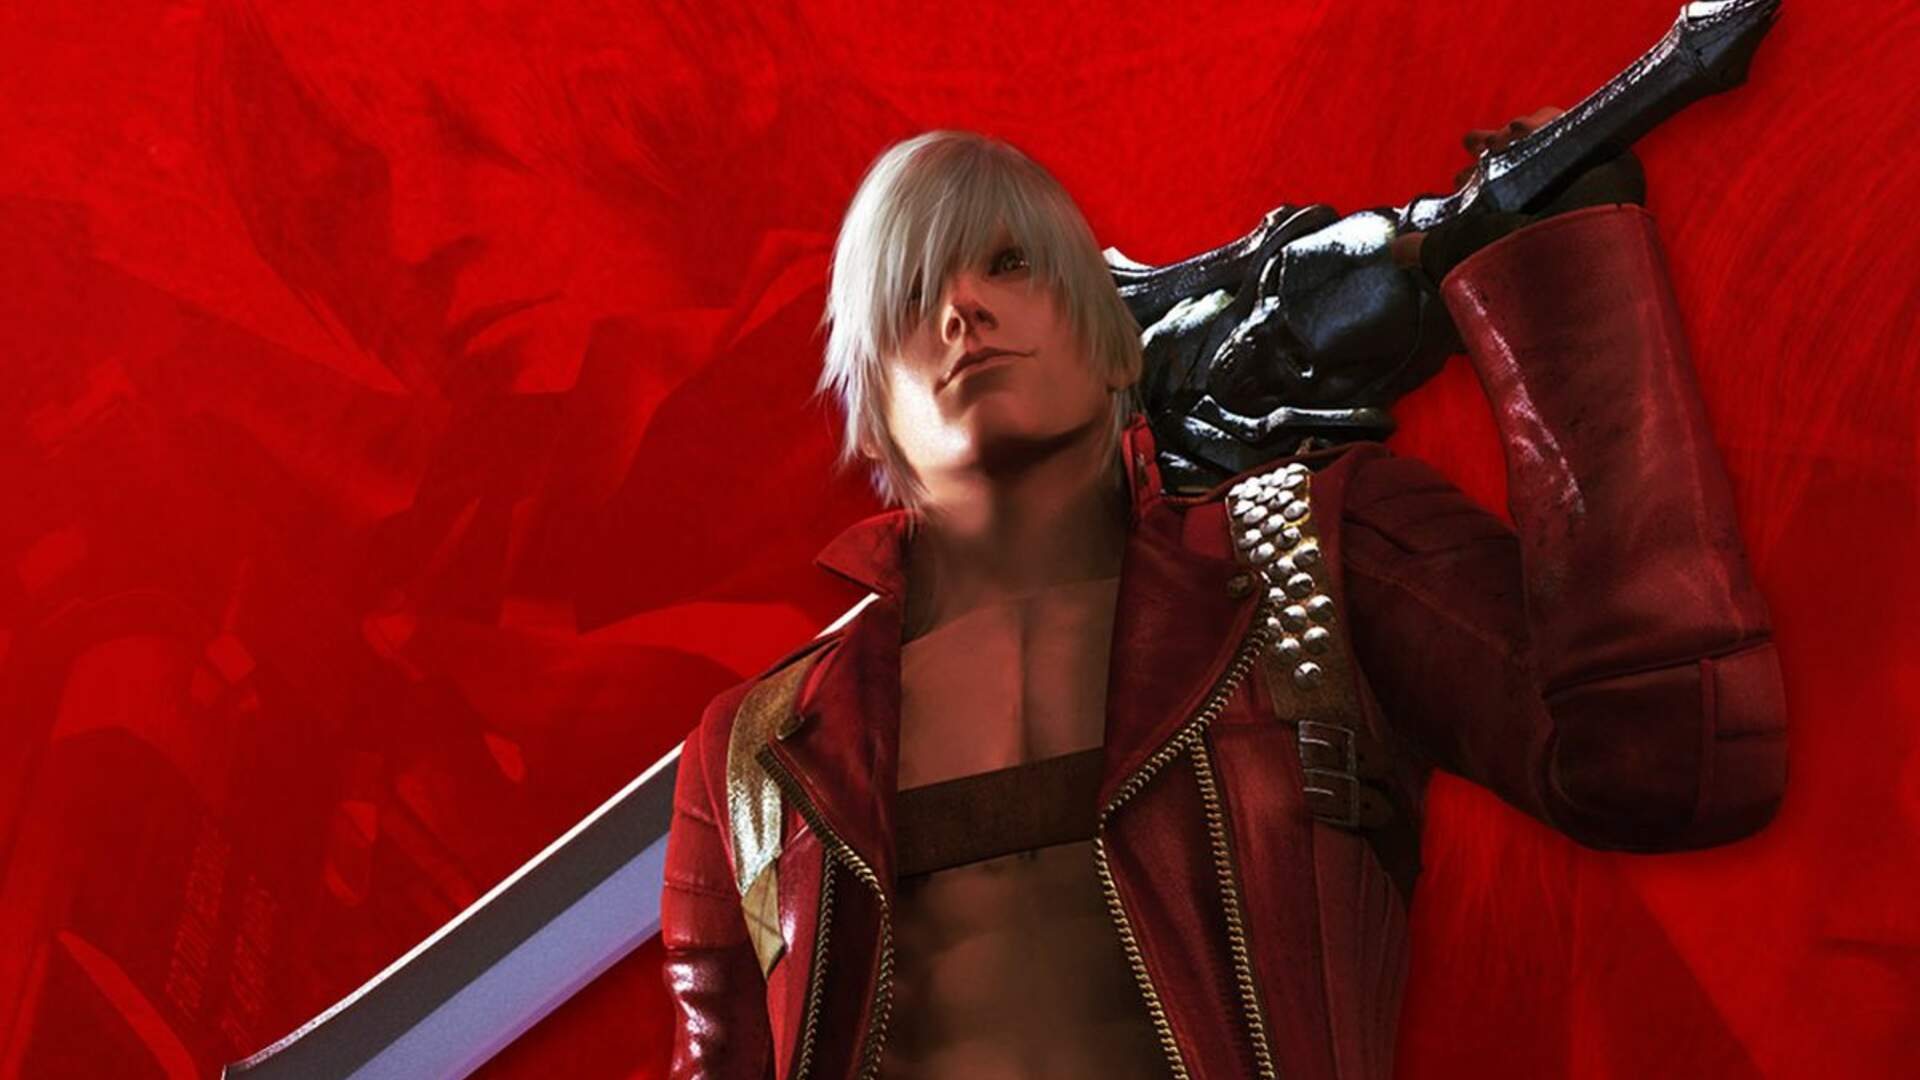 Devil May Cry 3's Switch Port Will Have a Local Co-Op Mode